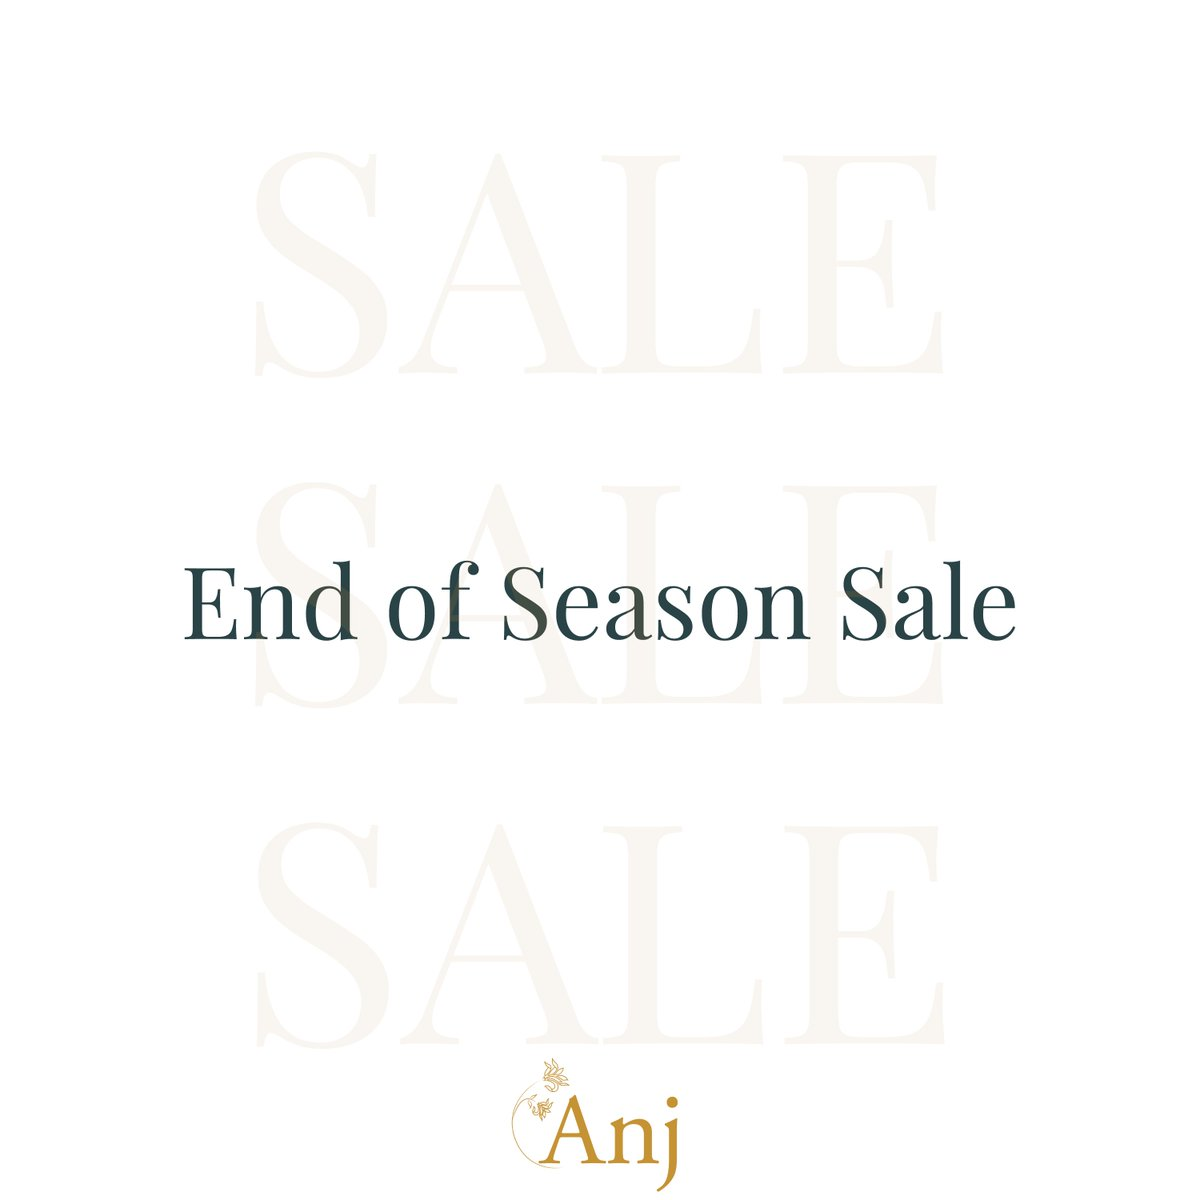 Celebrate this season with Anj's special End of Season sale. Visit our website now or call us on +91-7208612777 / +91-9004078377 to Book an appointment.  #anj #anjindia #anjfashion #endofseasonsale #eoss #couturesale #fashionsale #luxurypretwear #indianpret #designeroutfits